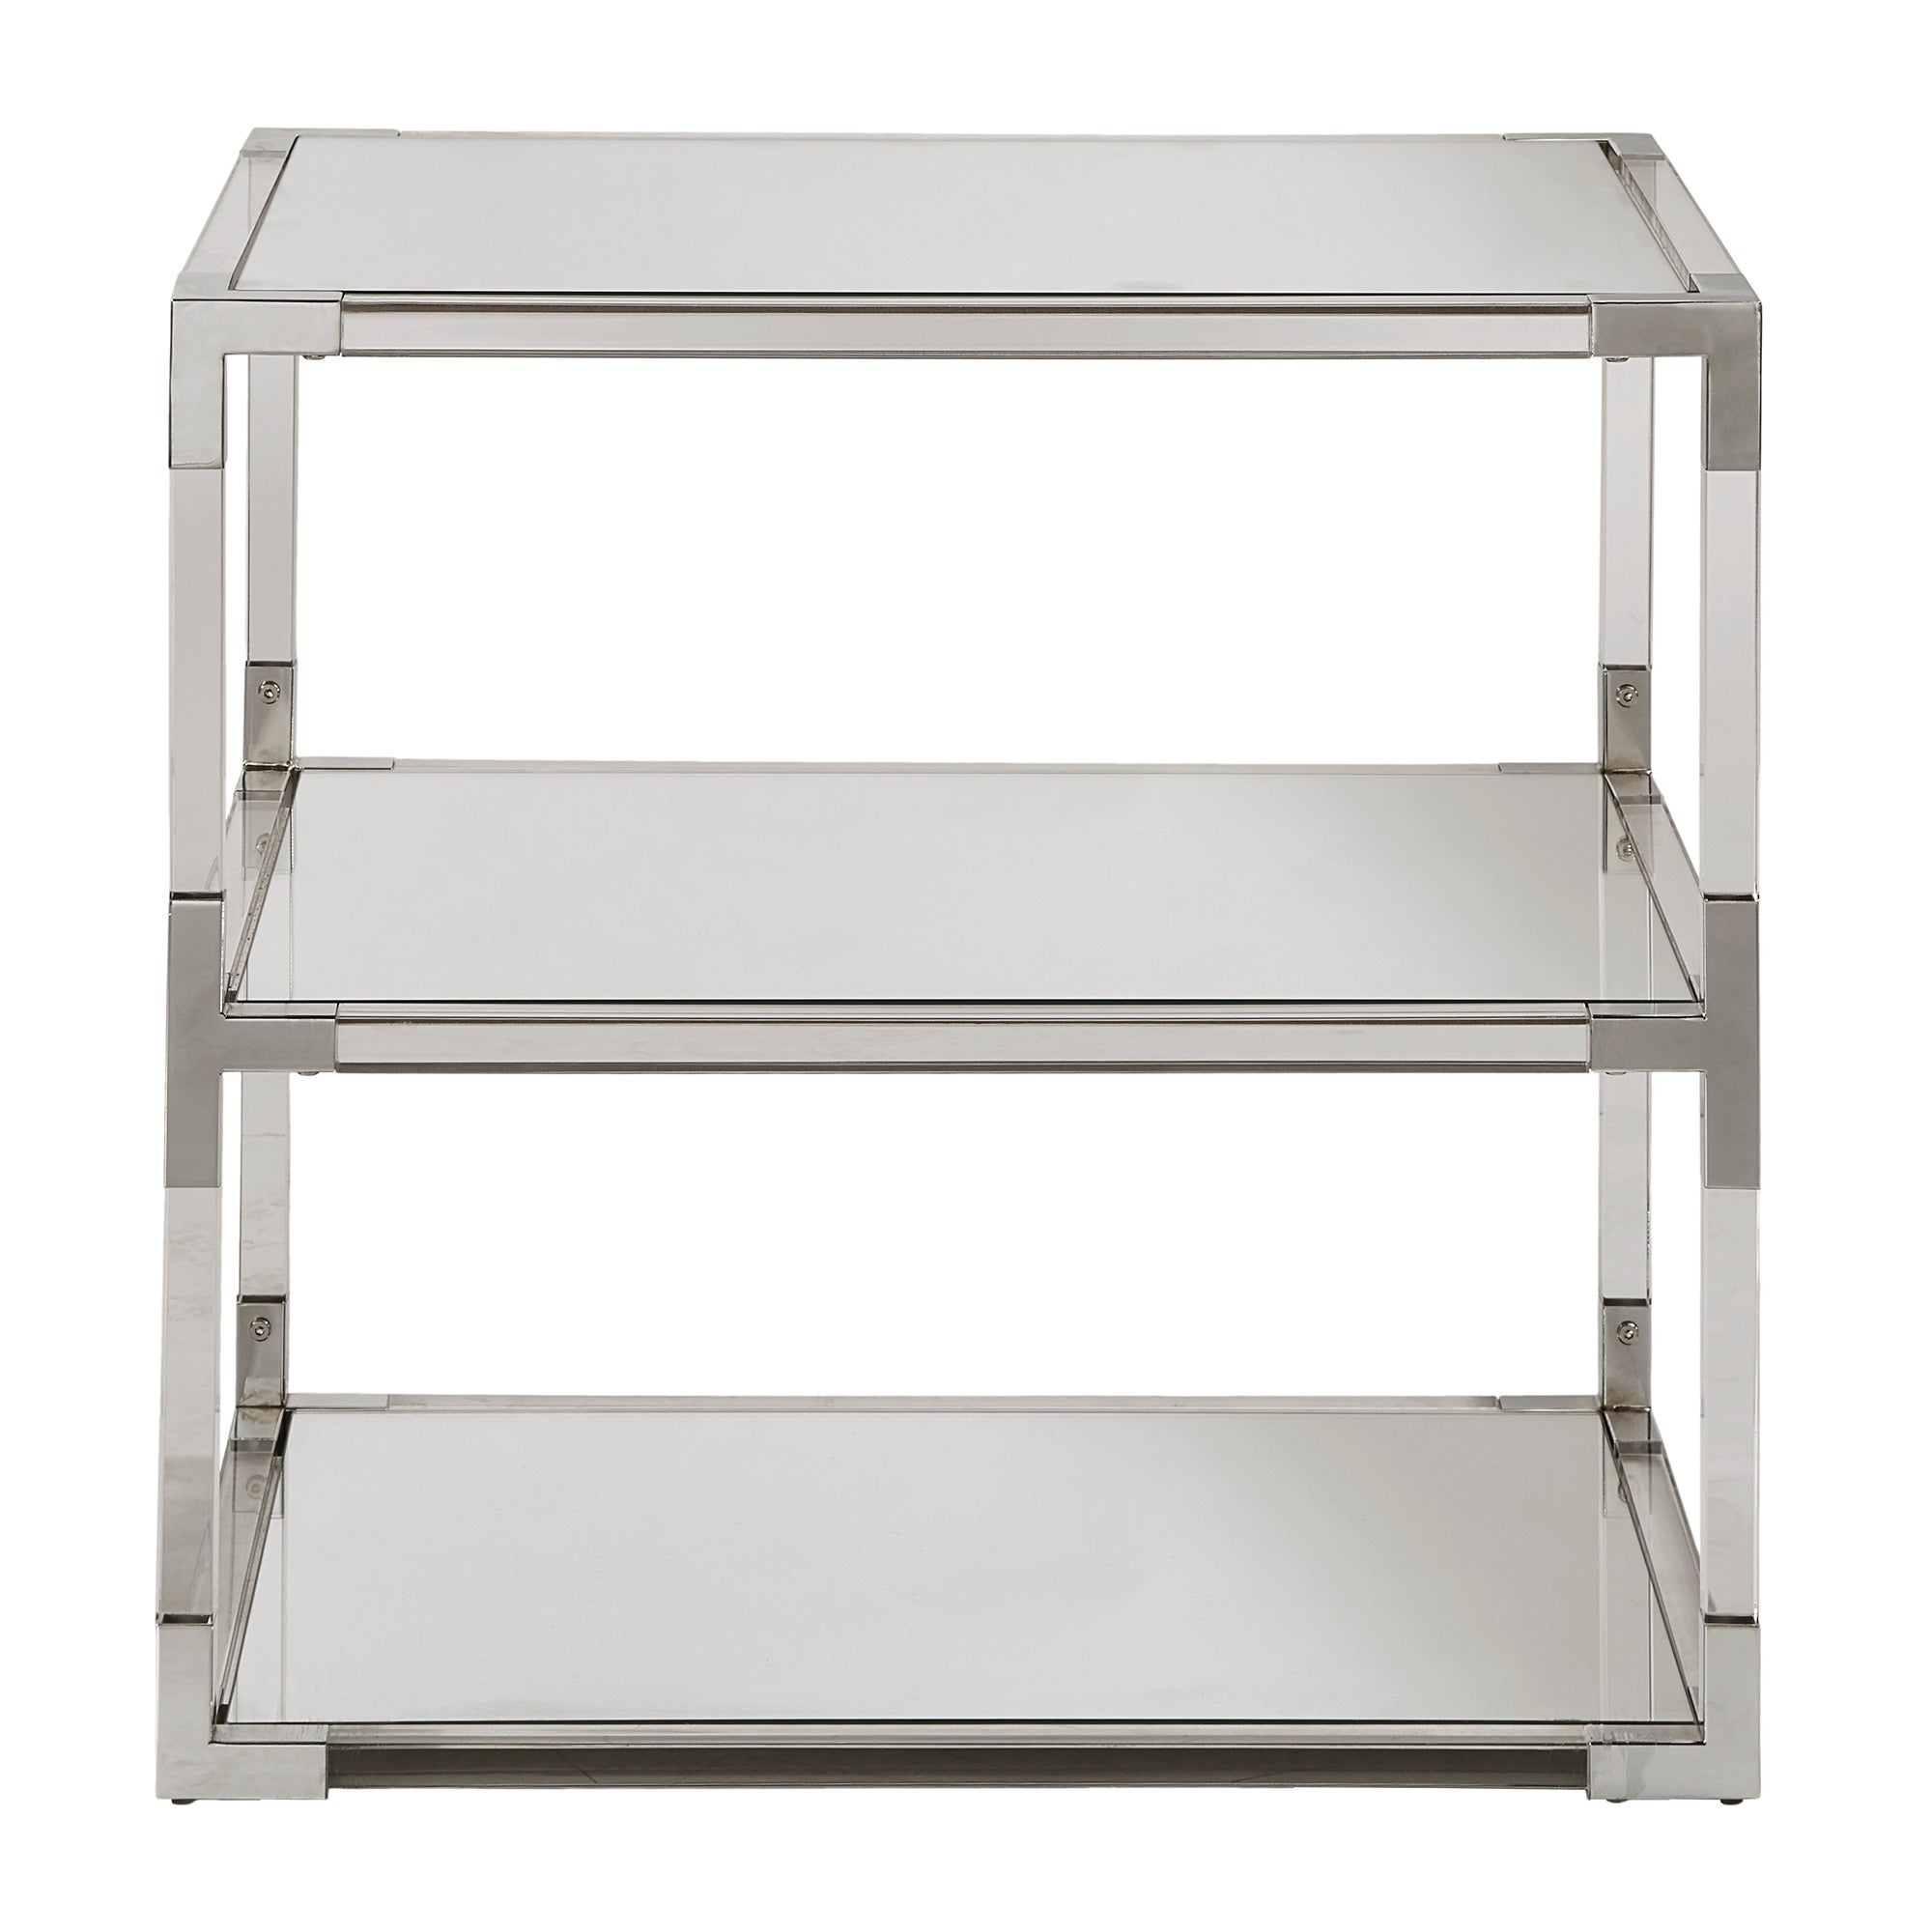 Shop Cyrus Clear Chrome Corner Mirrored Shelf End Table By INSPIRE Q Bold    Free Shipping Today   Overstock.com   15315705